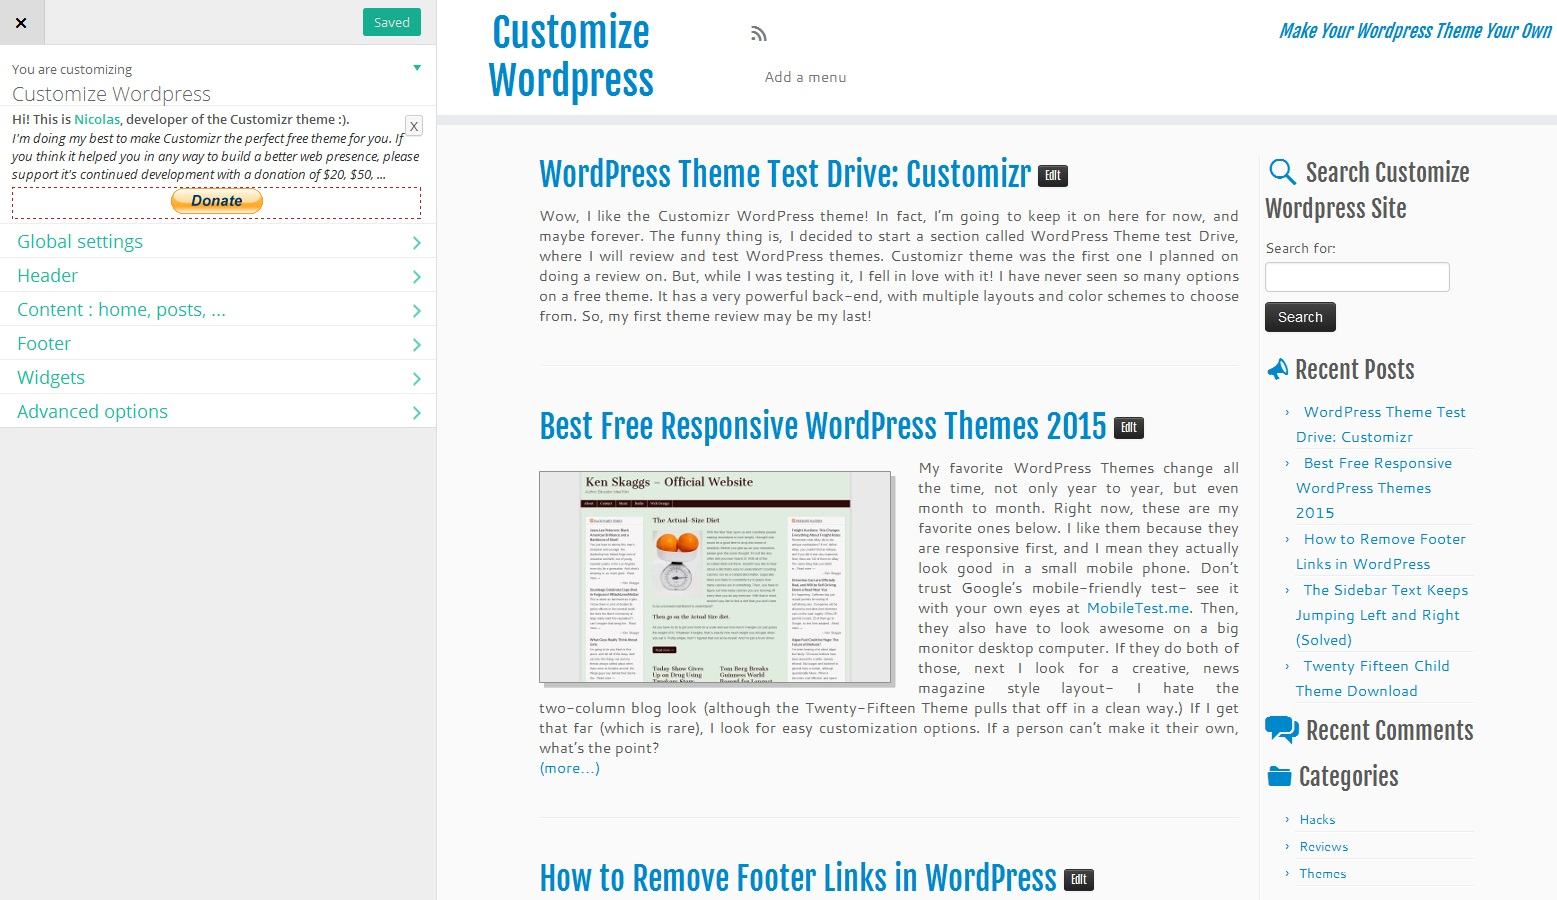 Wordpress Theme Test Drive: Customizr - Customize Wordpress